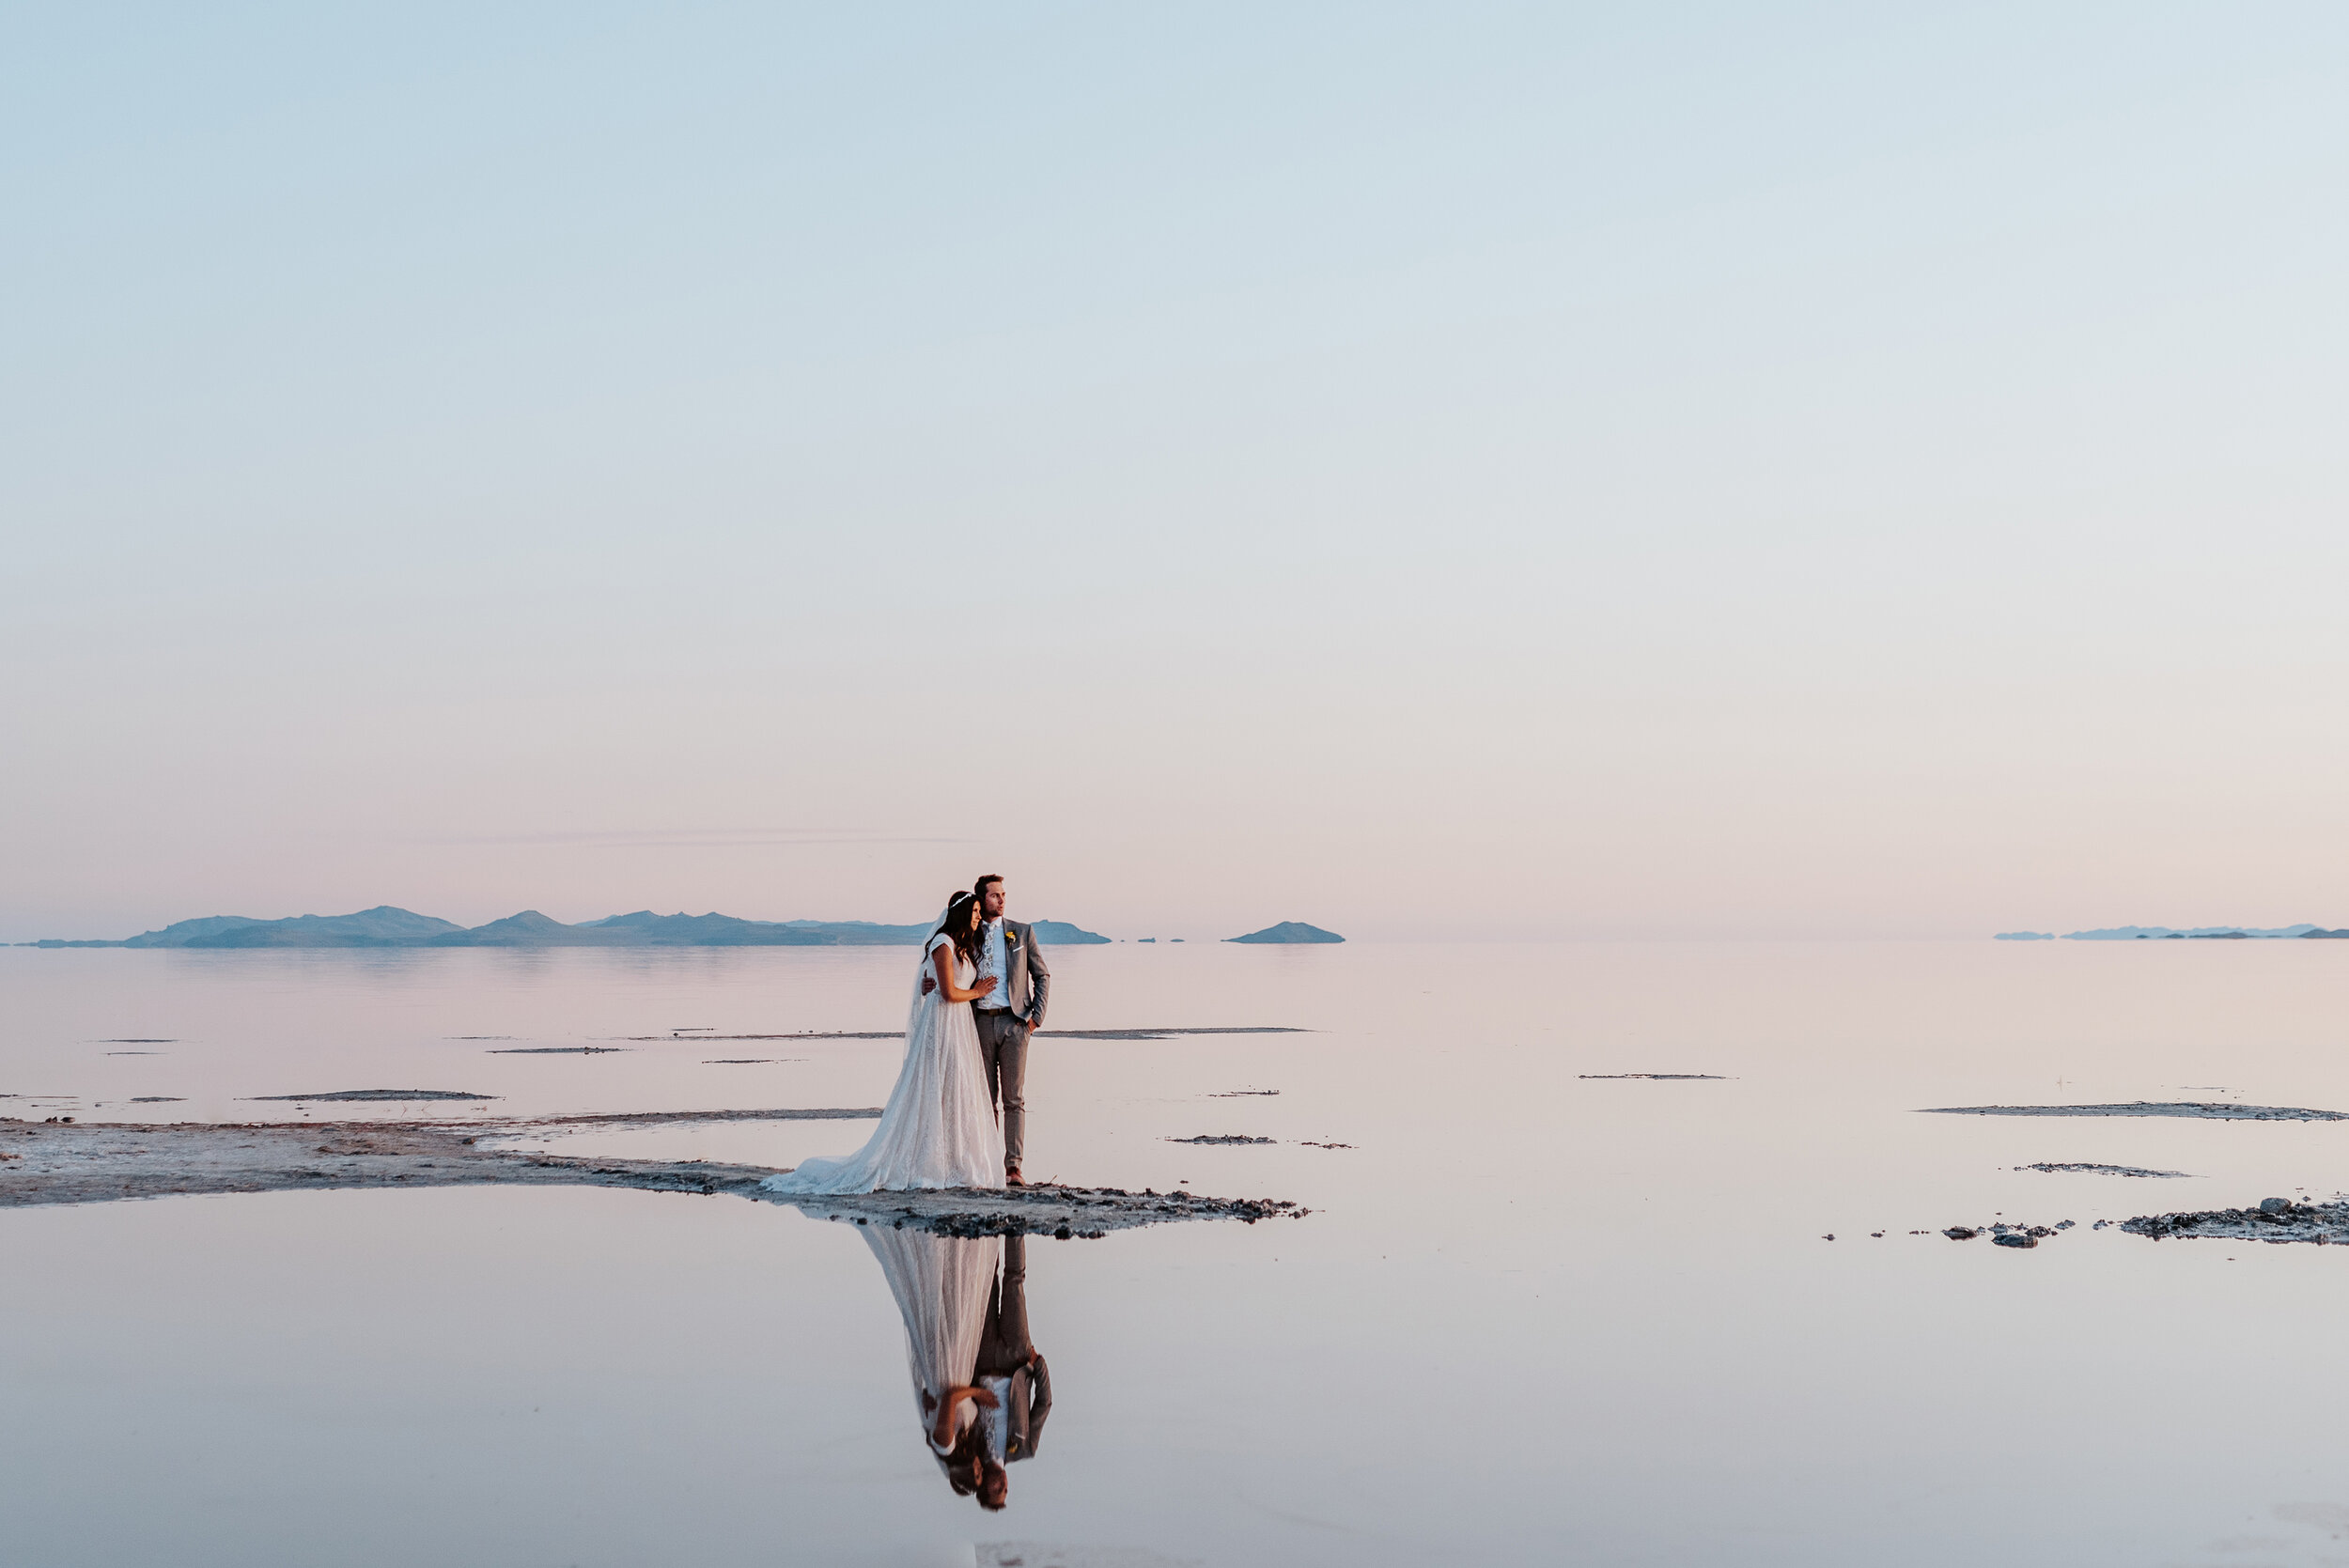 The bride and groom were surrounded by water as their reflection is captured flawlessly without any wind at the Great Salt Lakes. #spiraljetty #GreatSaltLake #formalsession #SaltFlats #sunsetphotosession #NorthernUtah #weddingphotographer #formalphotographer #brideandgroom #outdoorformals #weddingformalphotography